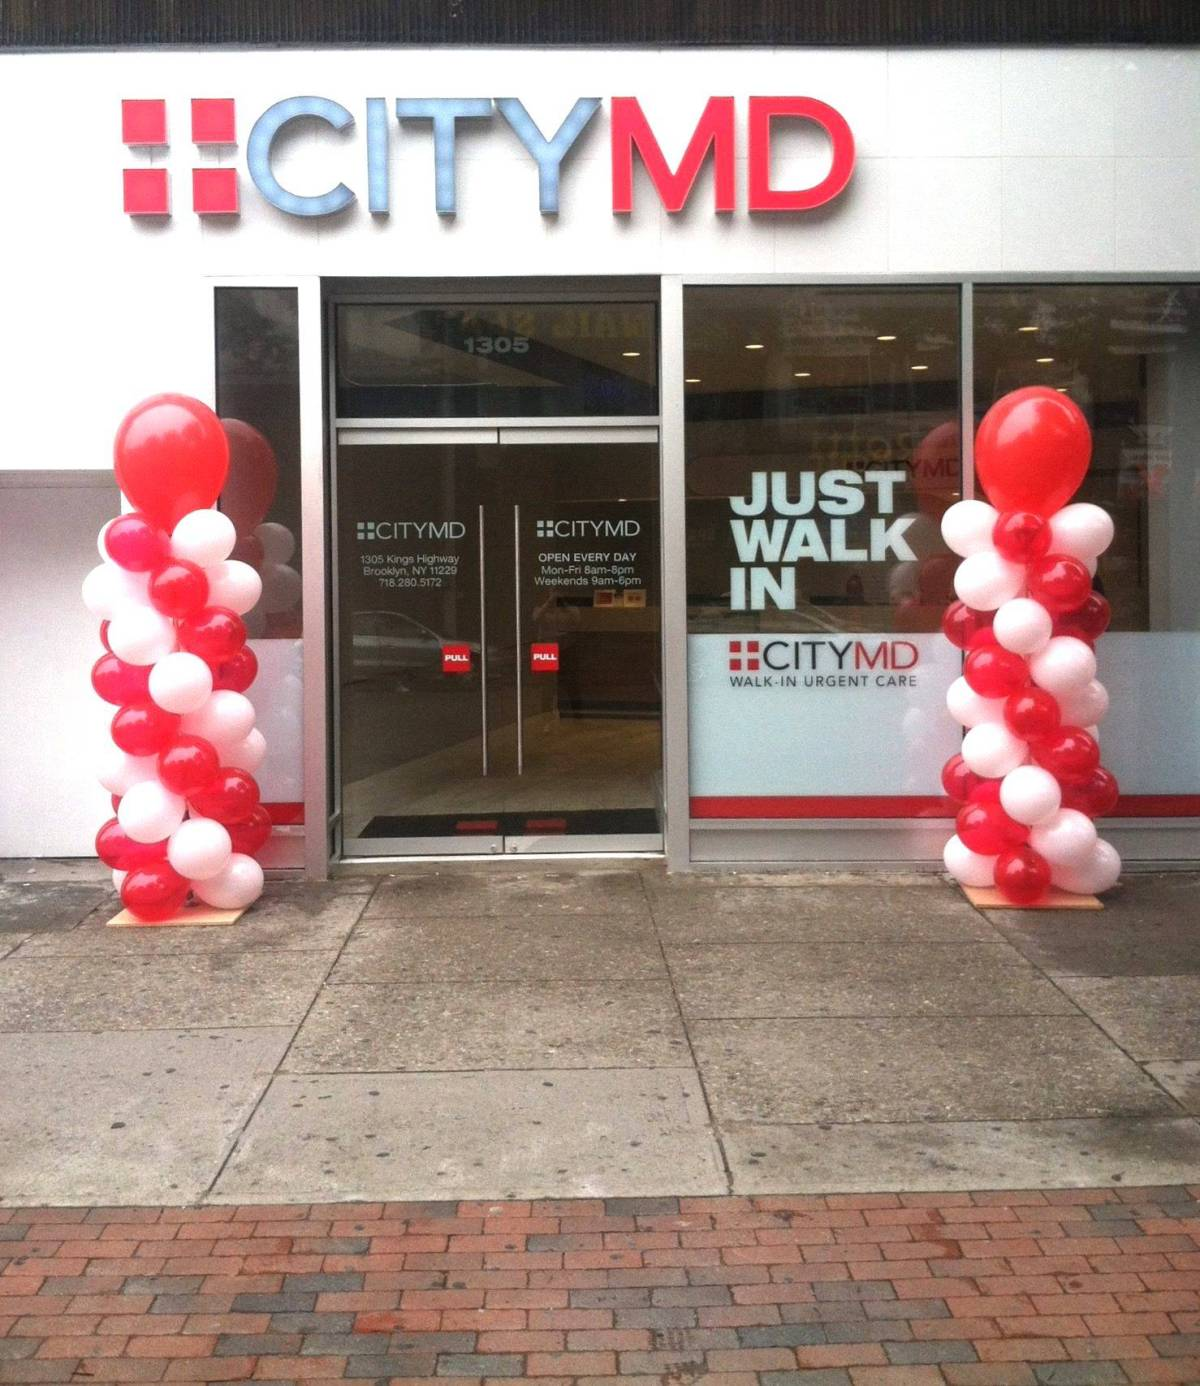 The health clinic chain, that provides quick, accessible medical services, is readying to open its 12th Brooklyn location on Fulton Street